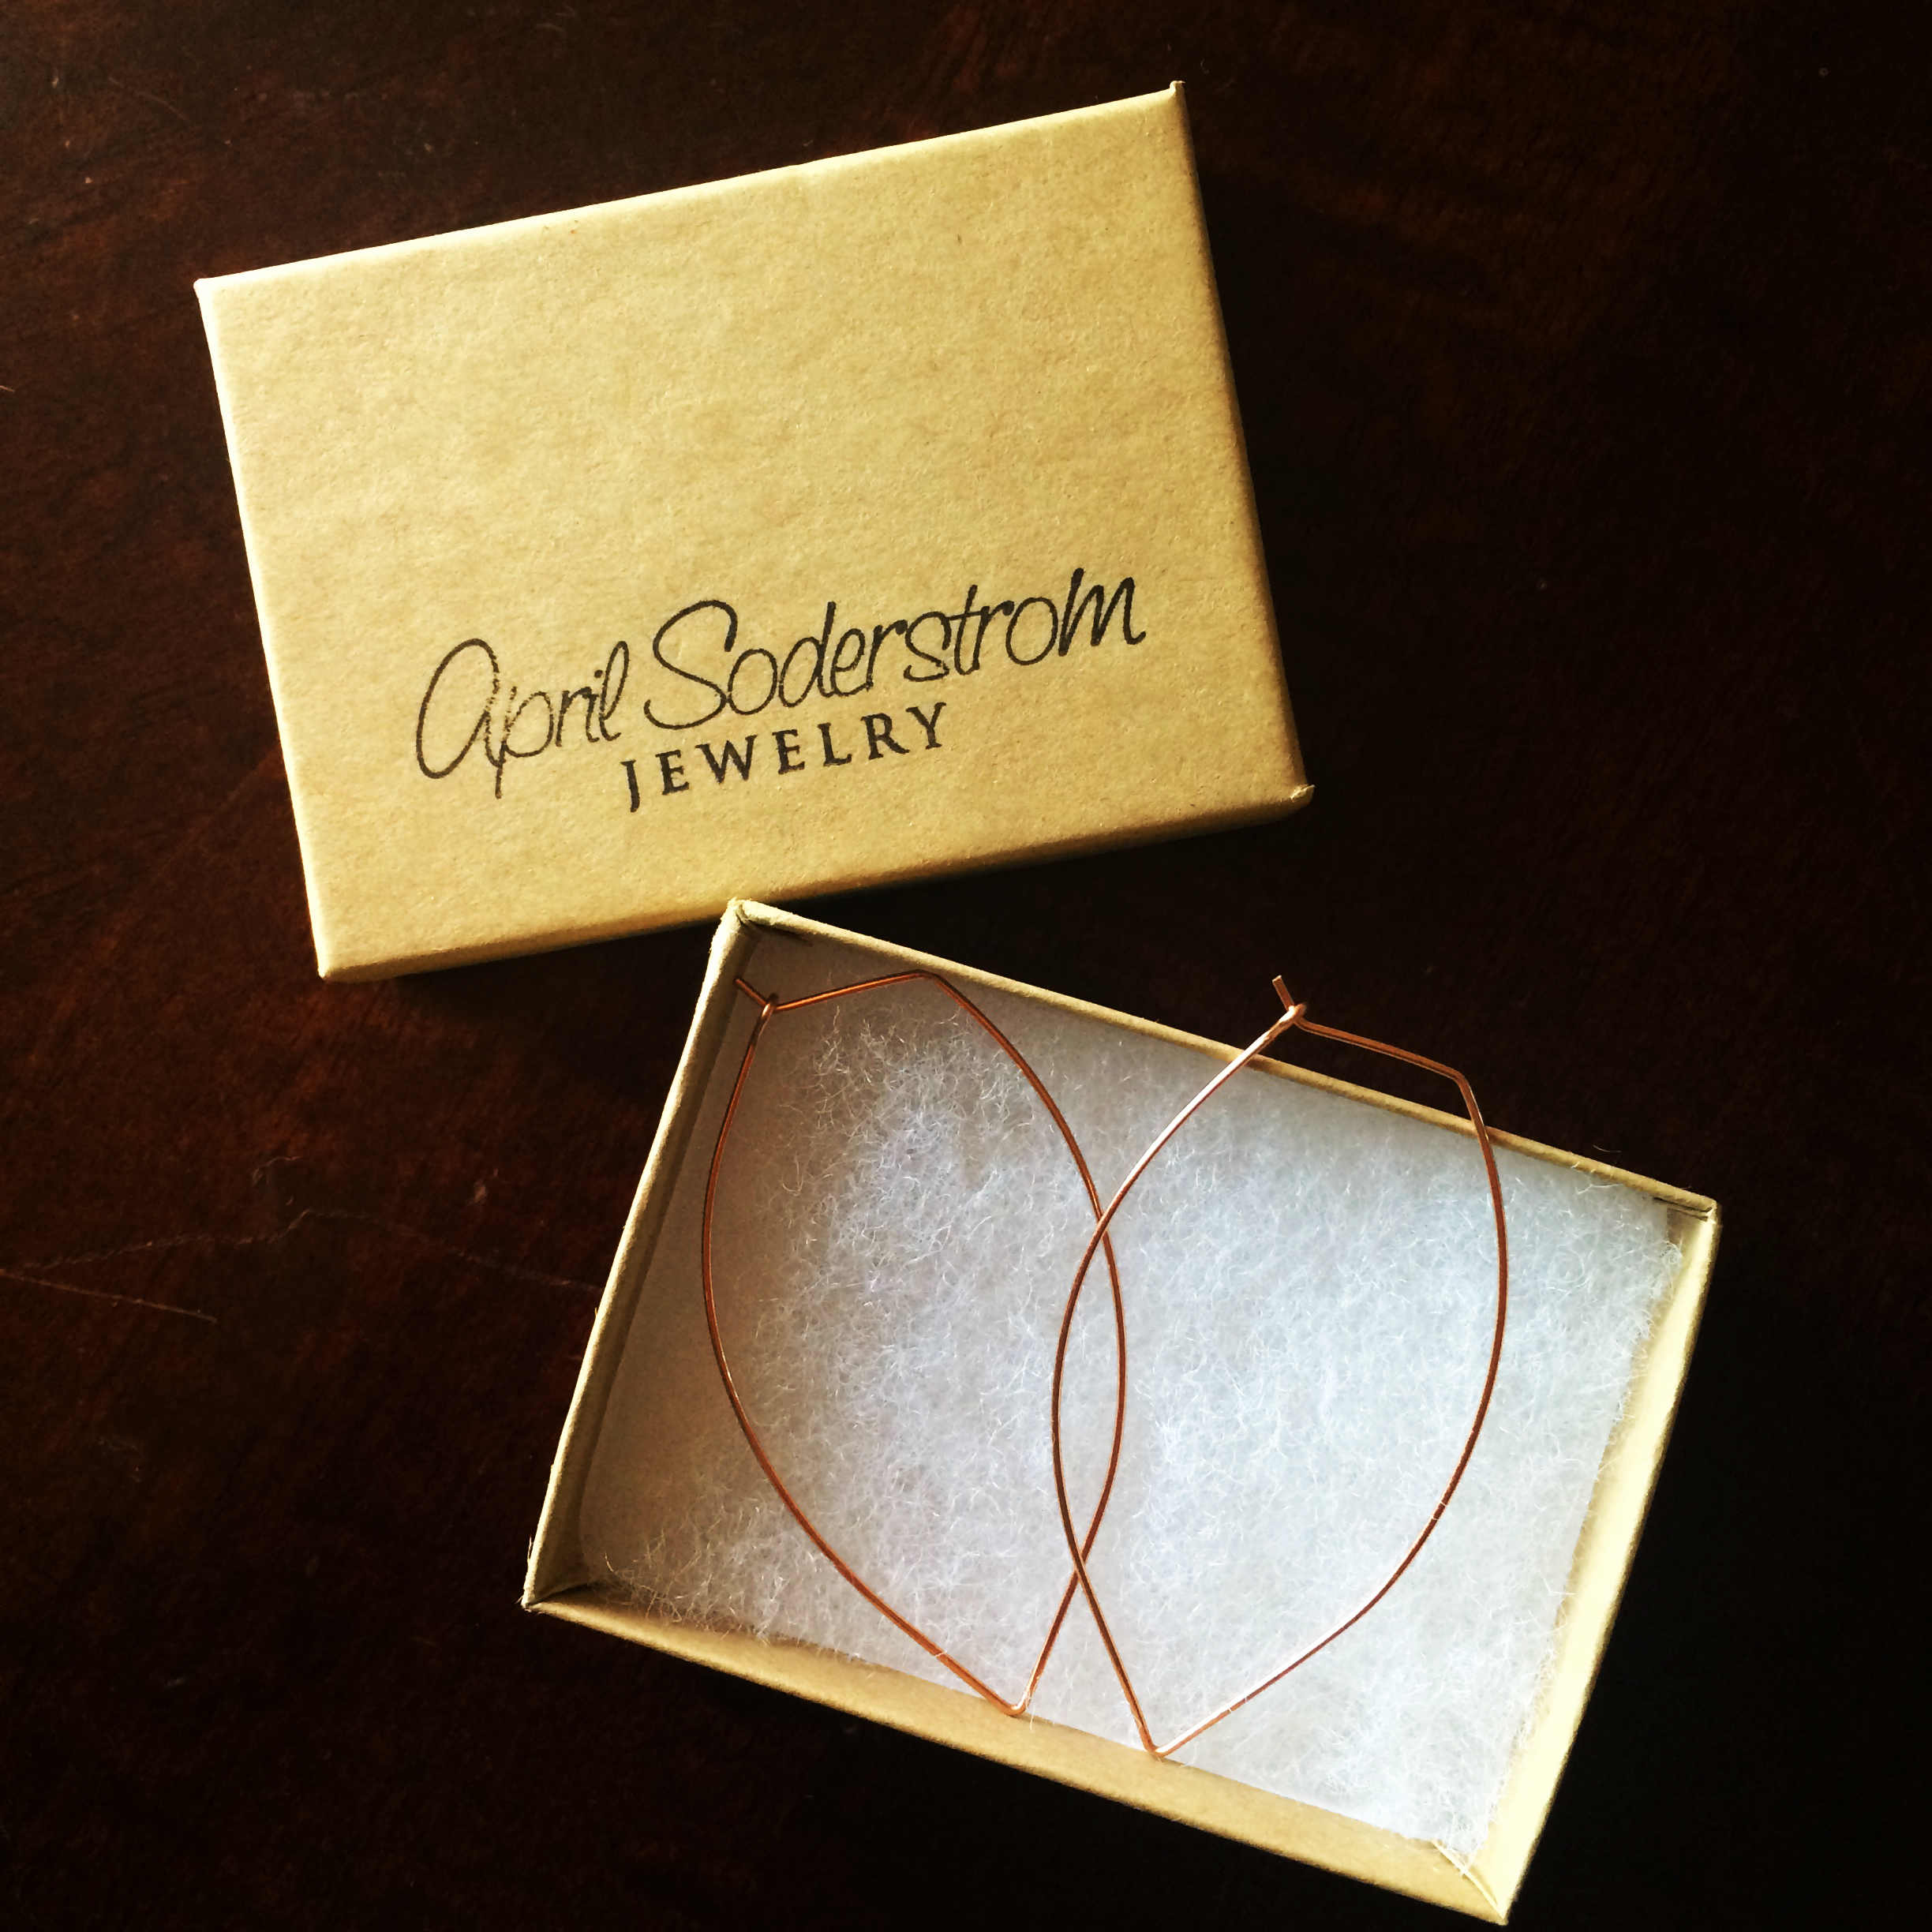 Classy Earrings + A Black Friday Deal from April Soderstrom!